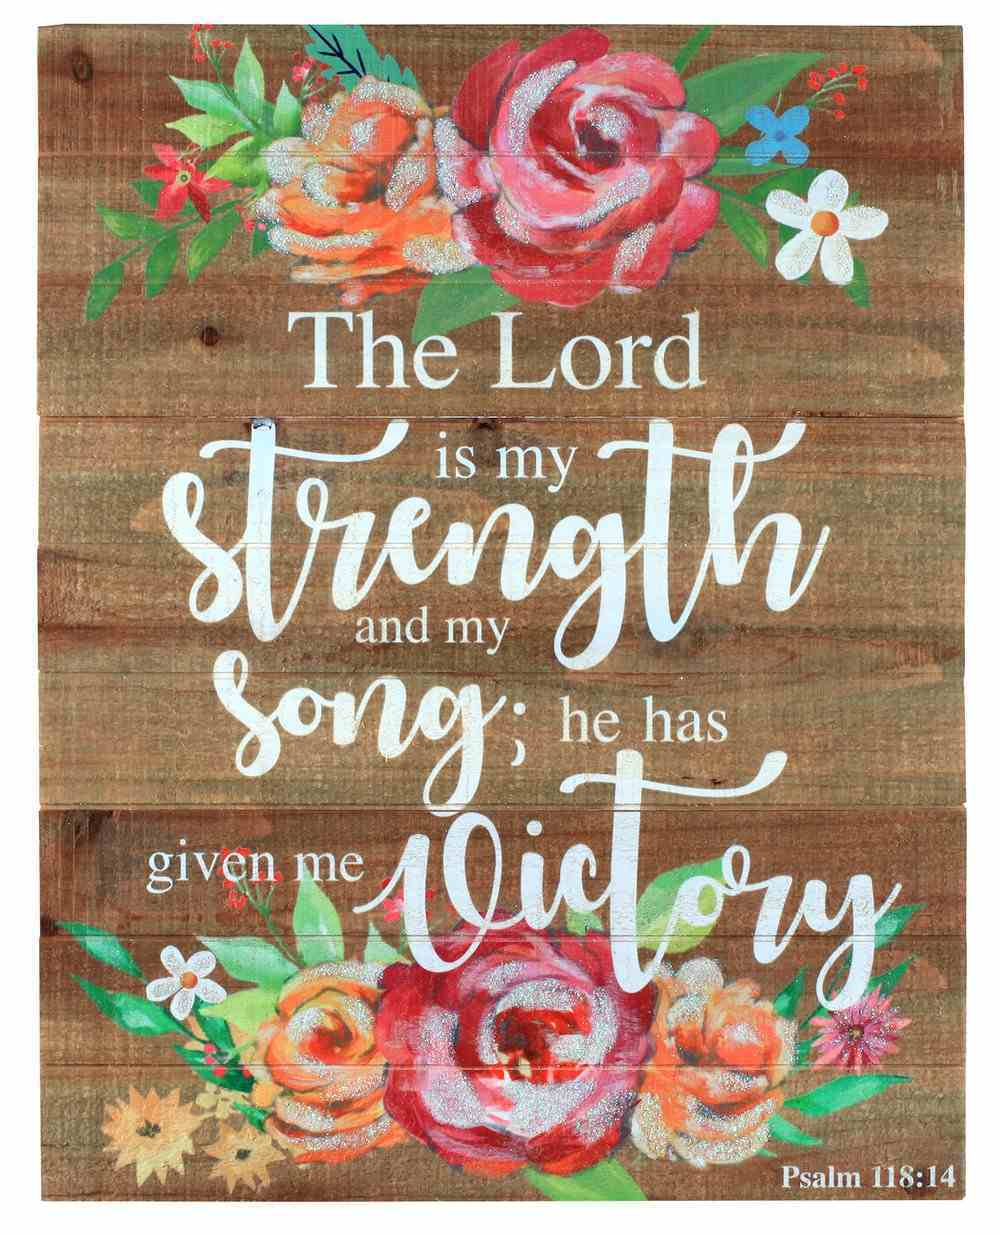 Mdf Wall Art: The Lord is My Strength, Psalm 118:14 Plaque